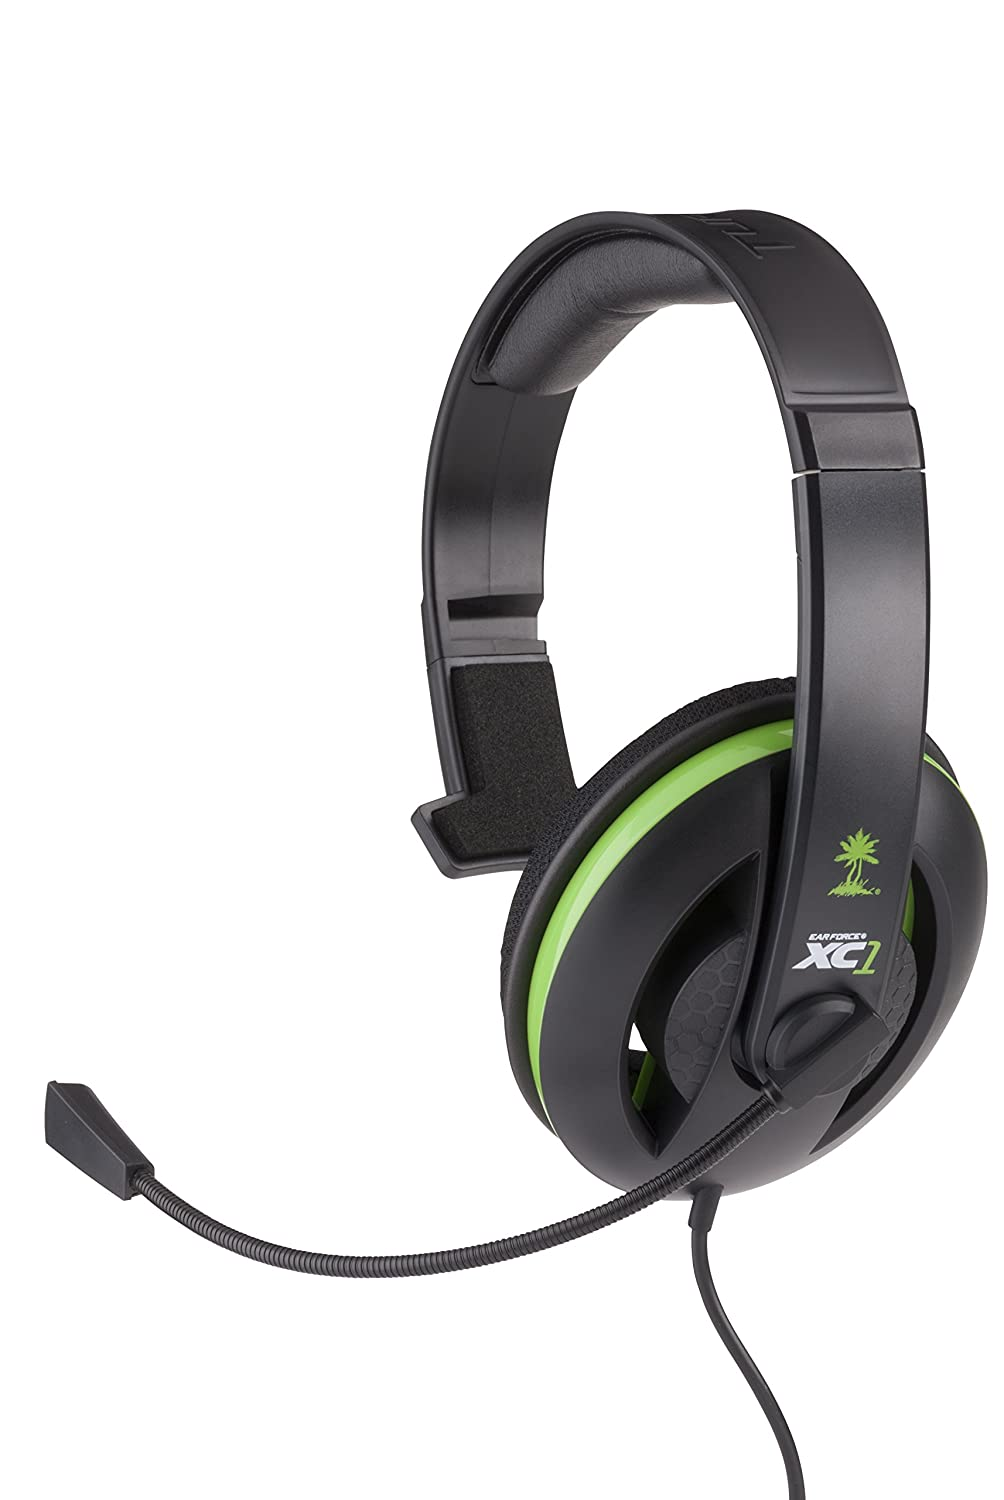 Turtle Beach - Ear Force XC1 Chat Communicator Gaming Headset - Xbox 360 (Discontinued by Manufacturer): Video Games